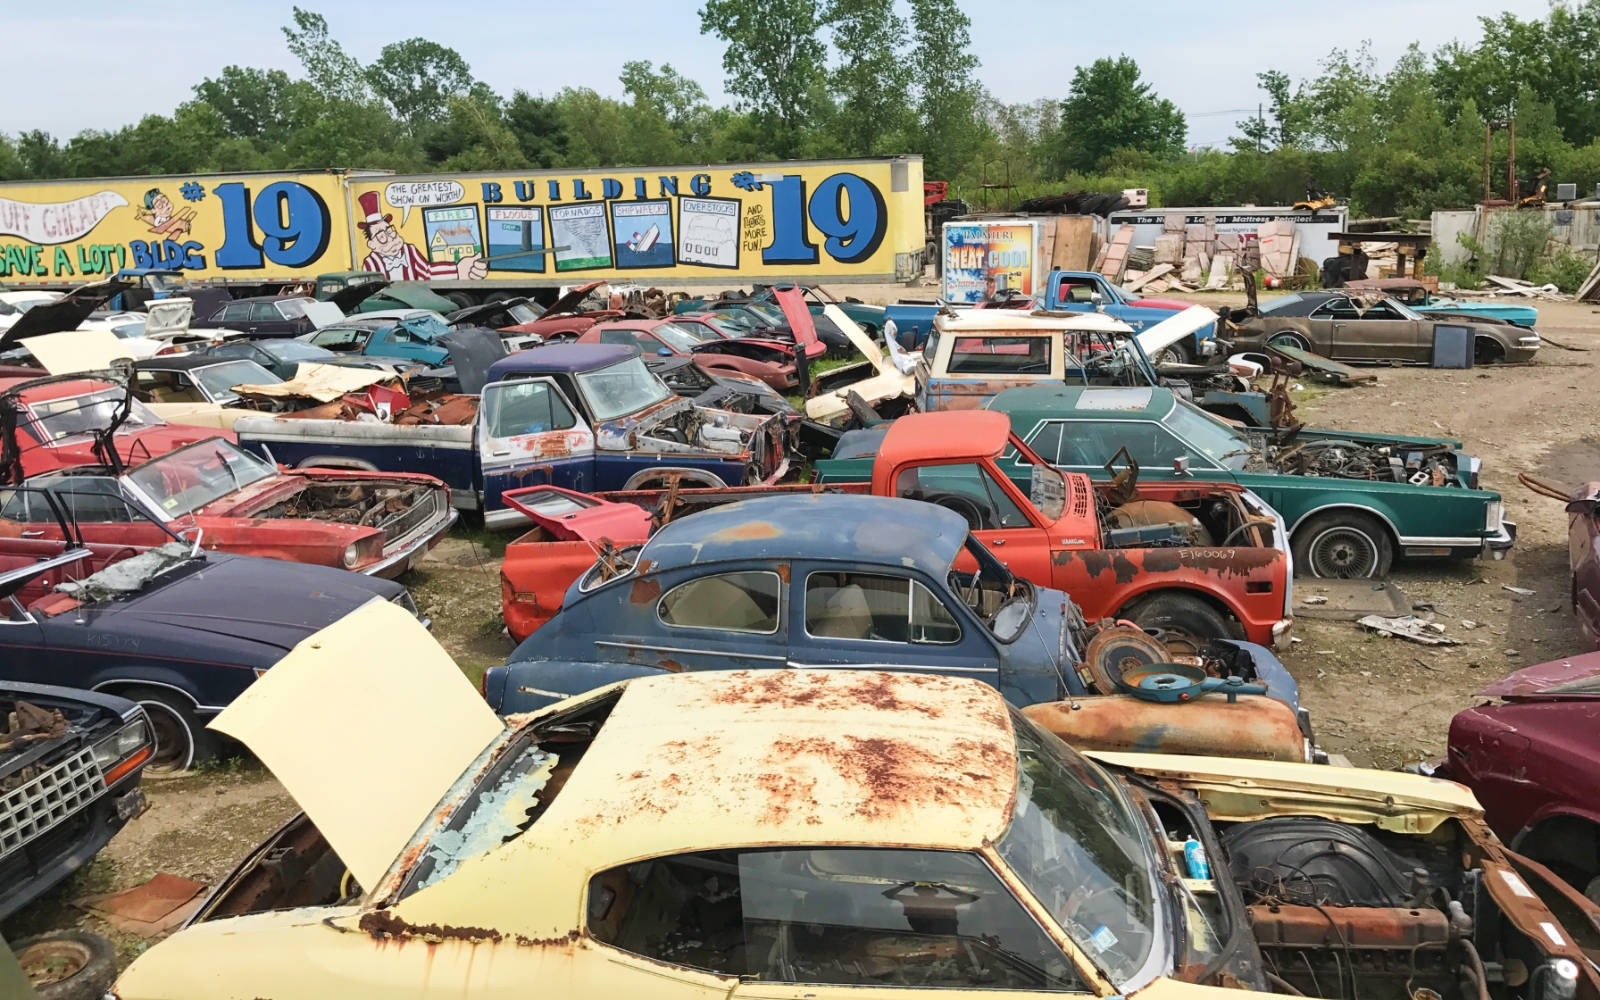 Junk Yards That Buy Cars Without Title